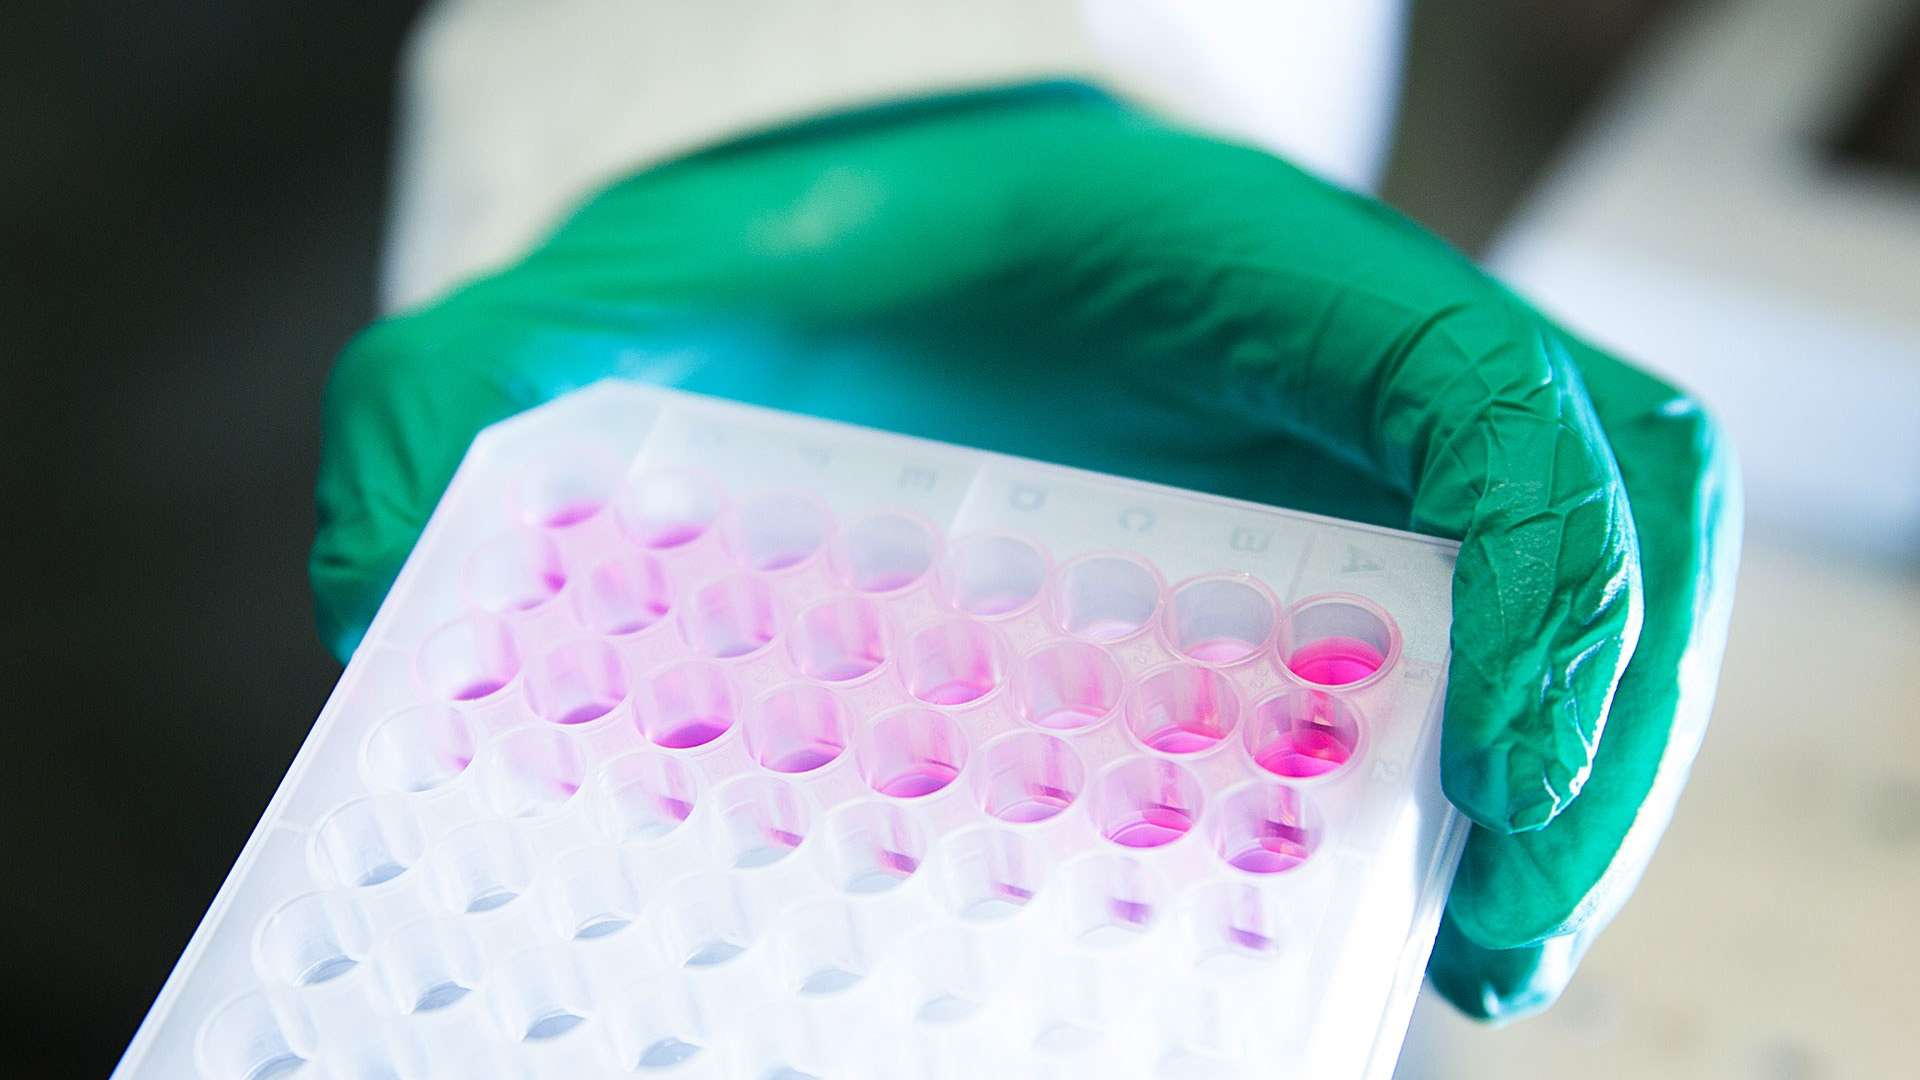 Bio-based products and processes already support pharmaceuticals and healthcare